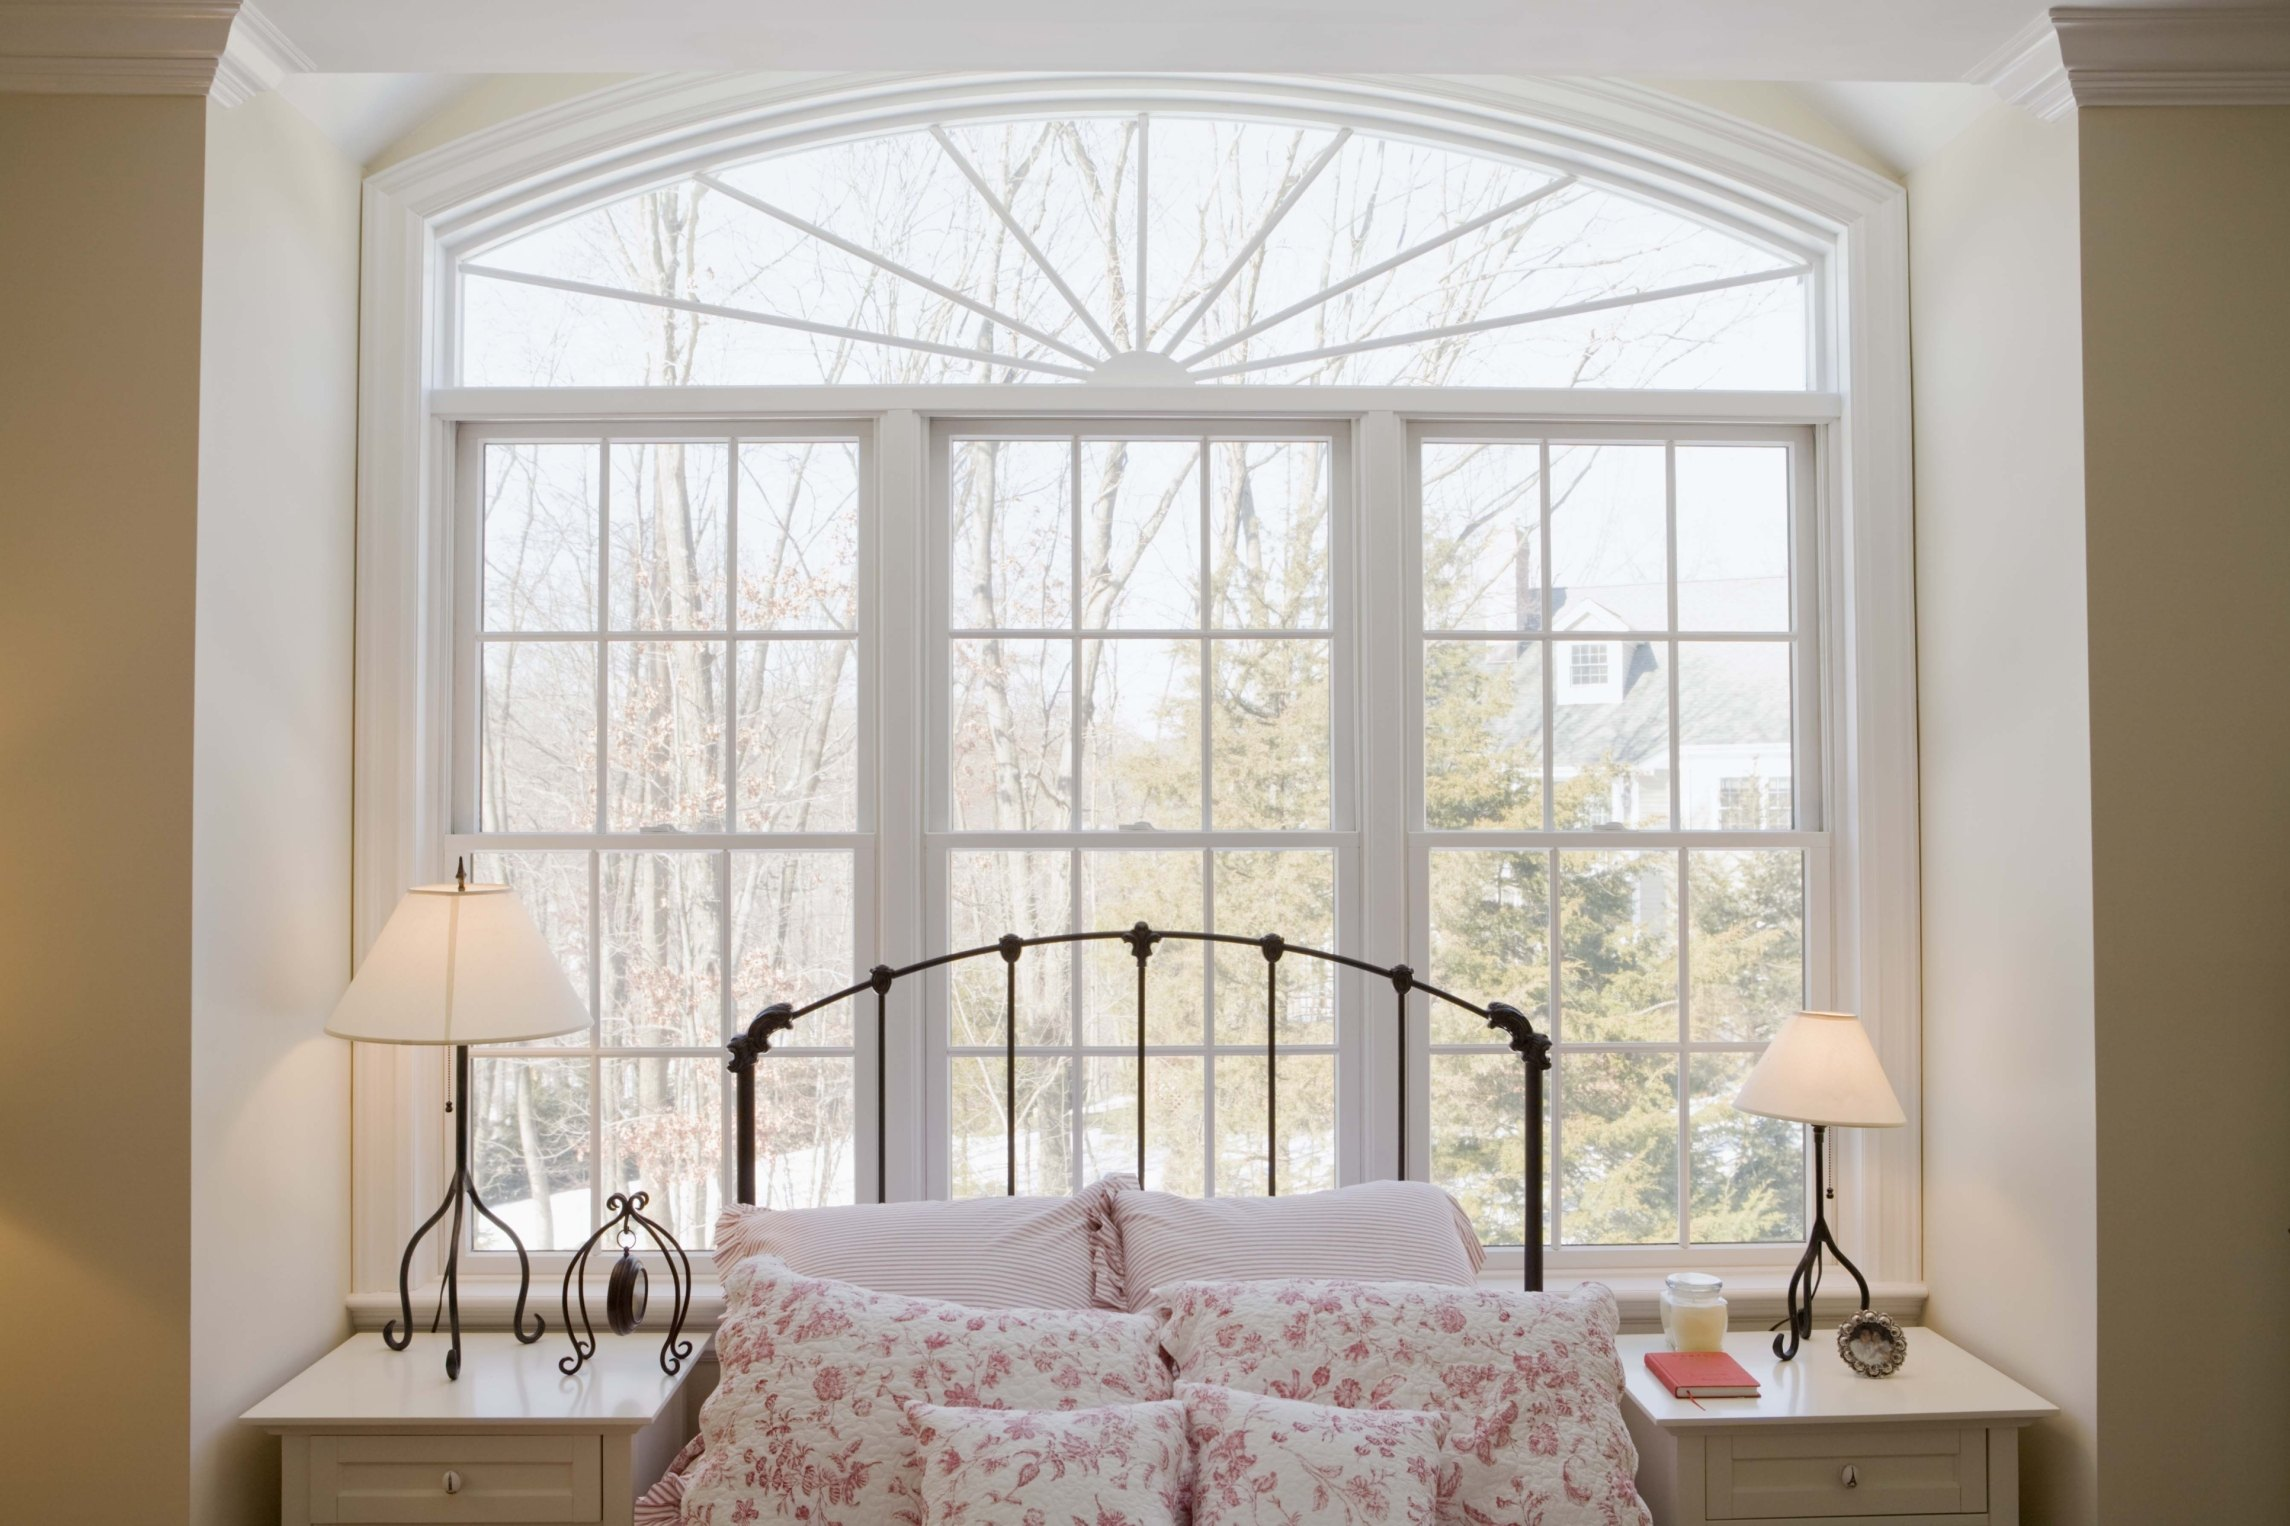 How To Arrange A Bedroom With Windows On Three Walls Ehow